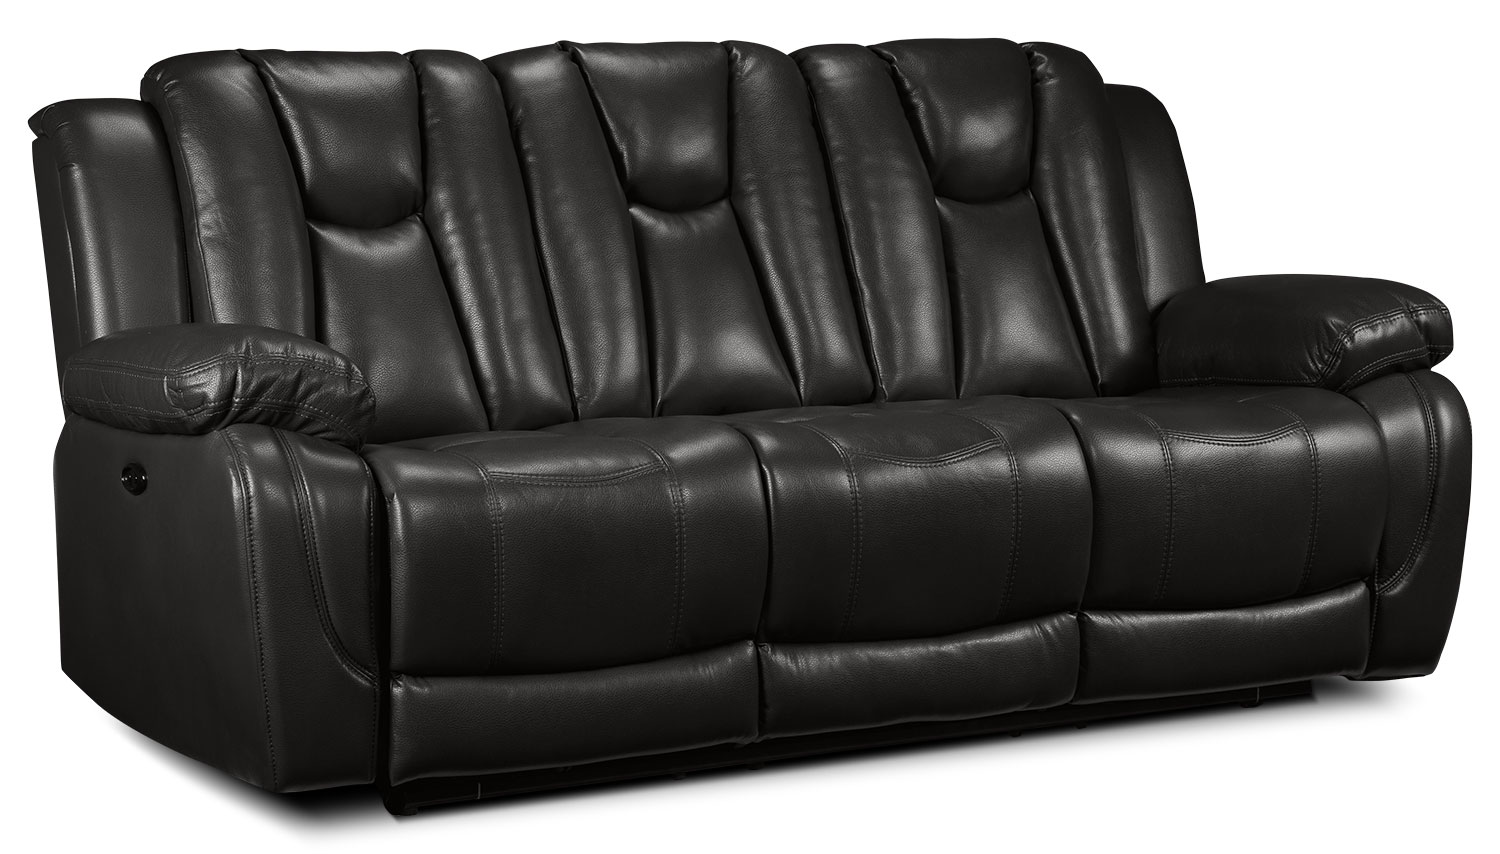 Knight Power Reclining Sofa - Grey